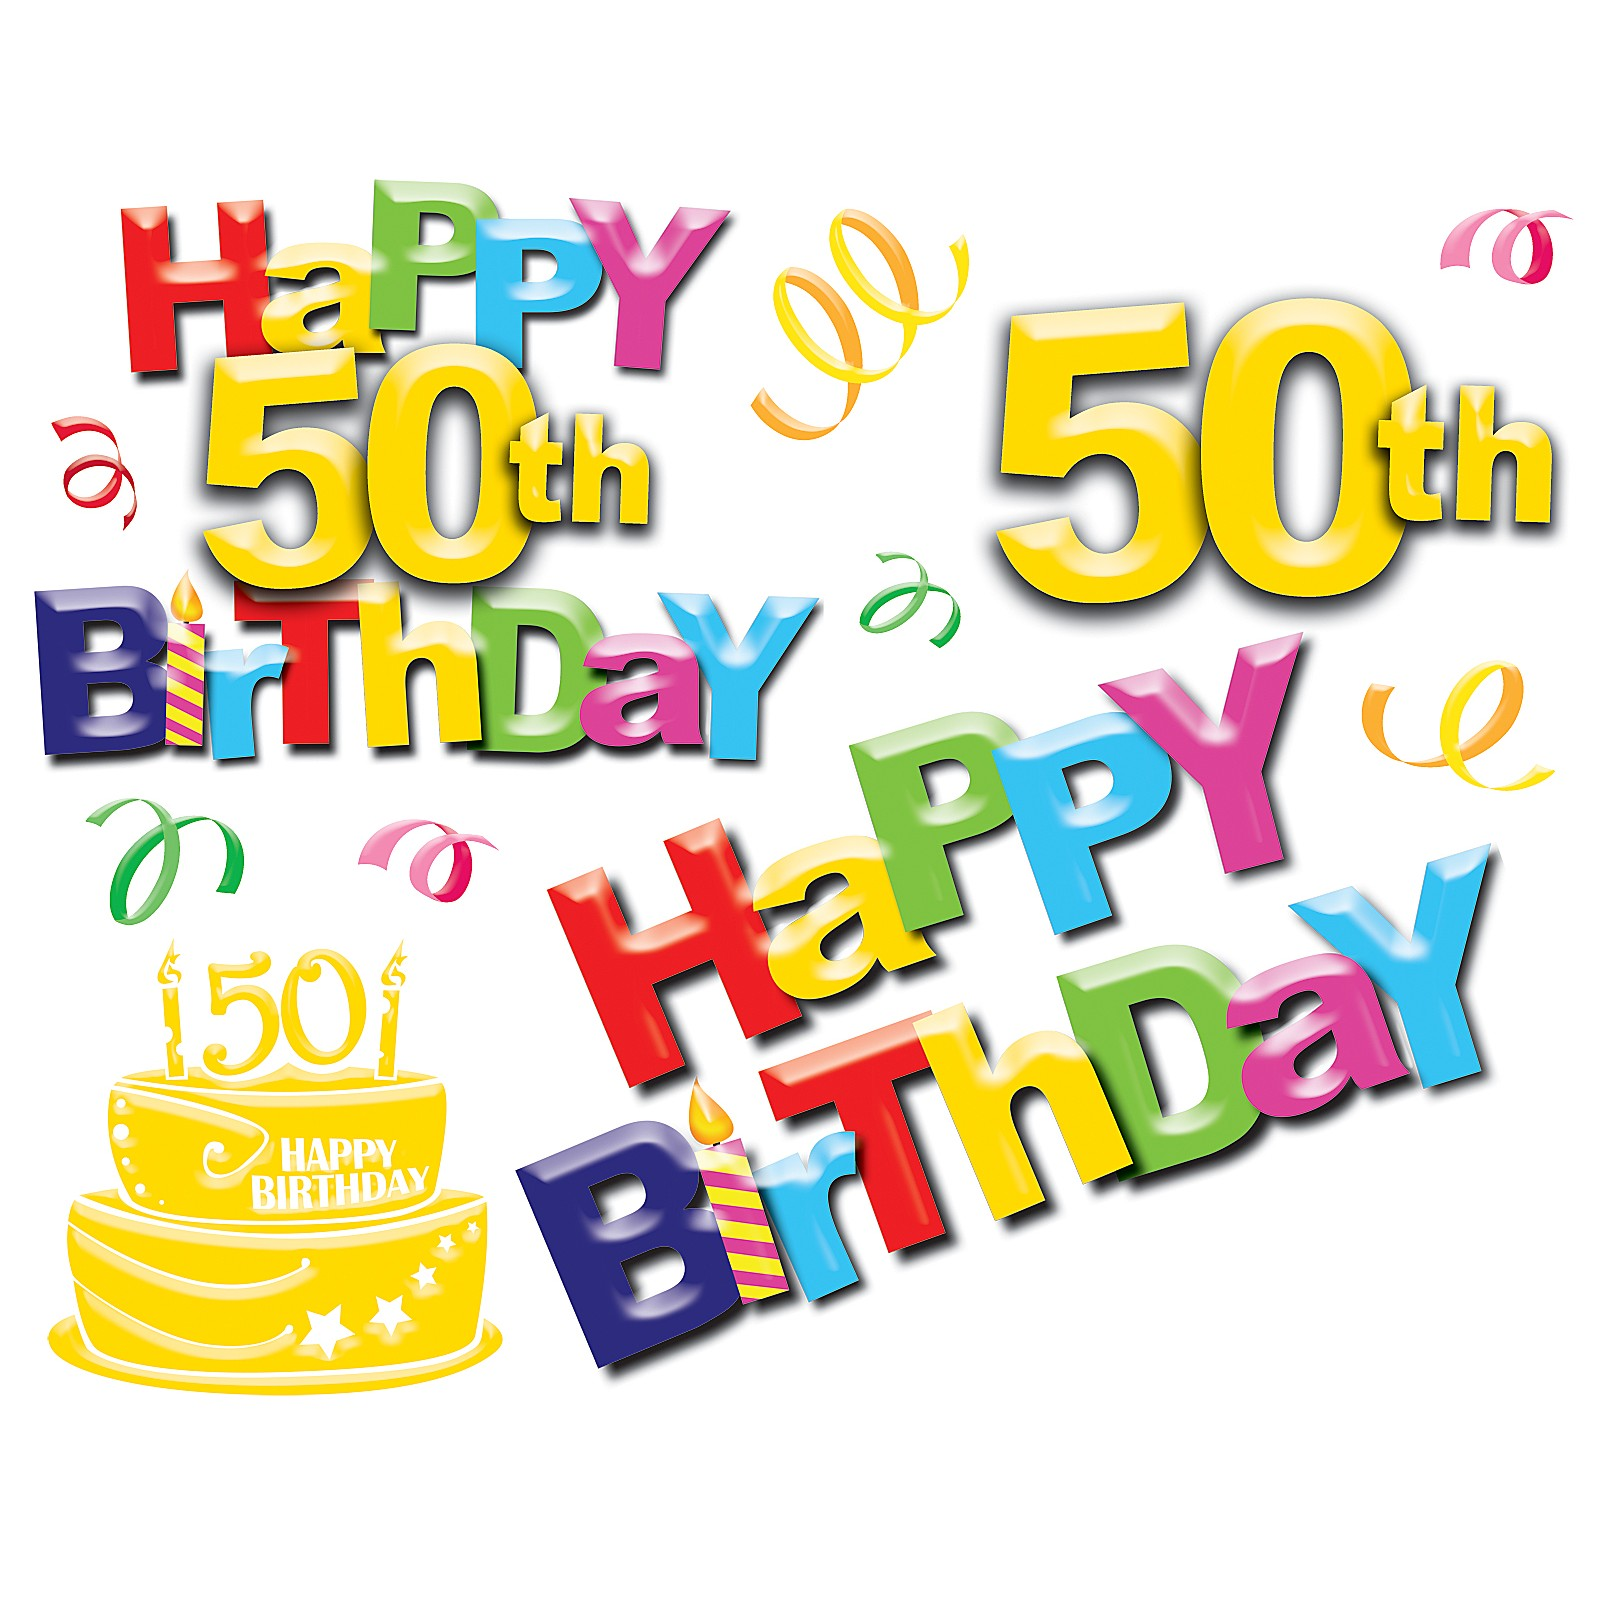 Bdyc Is 50 Today Berri District Youth Club